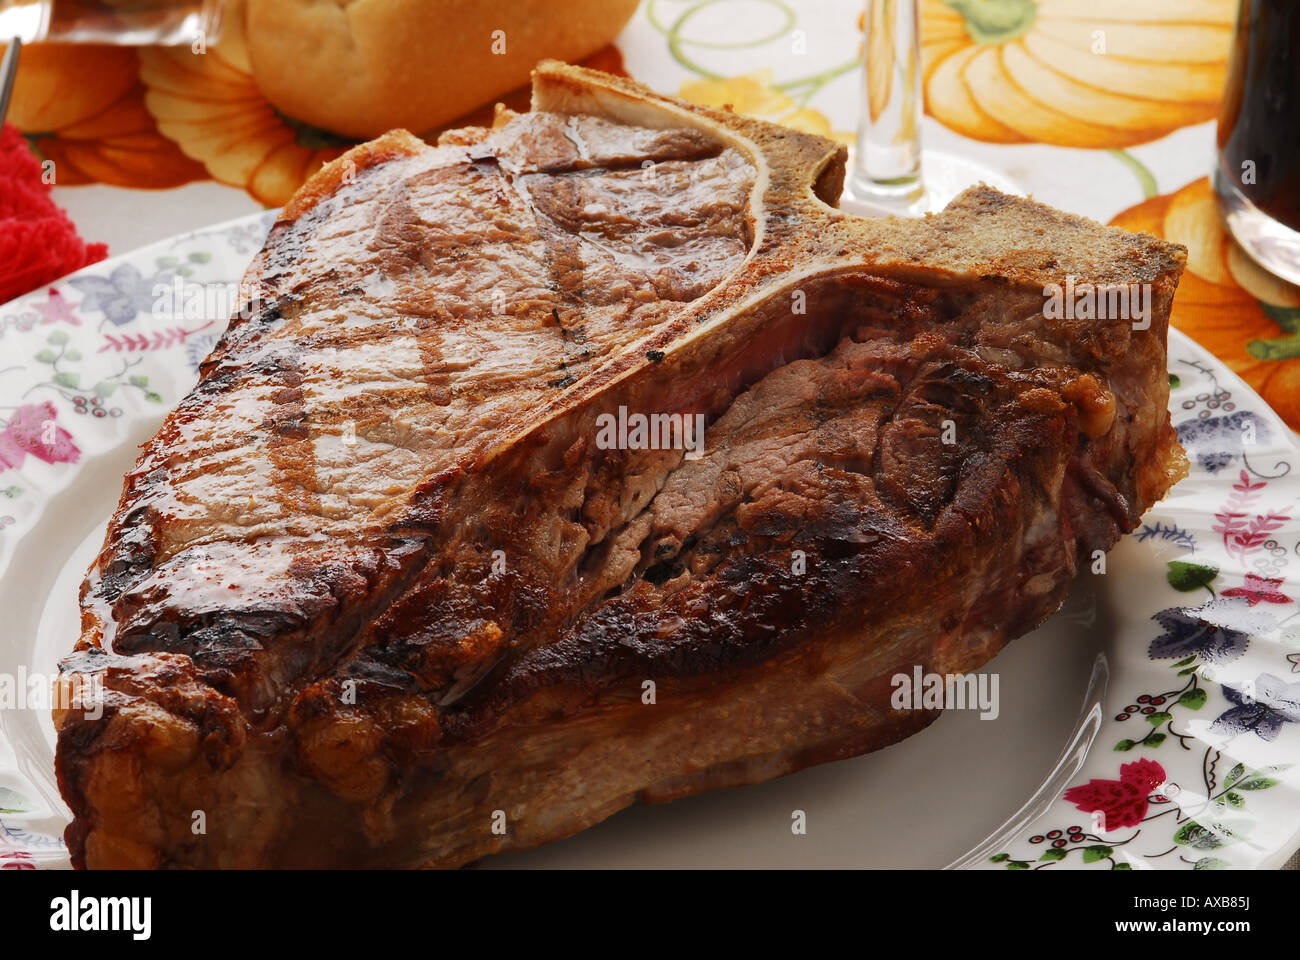 how to cook t bone steak on grill